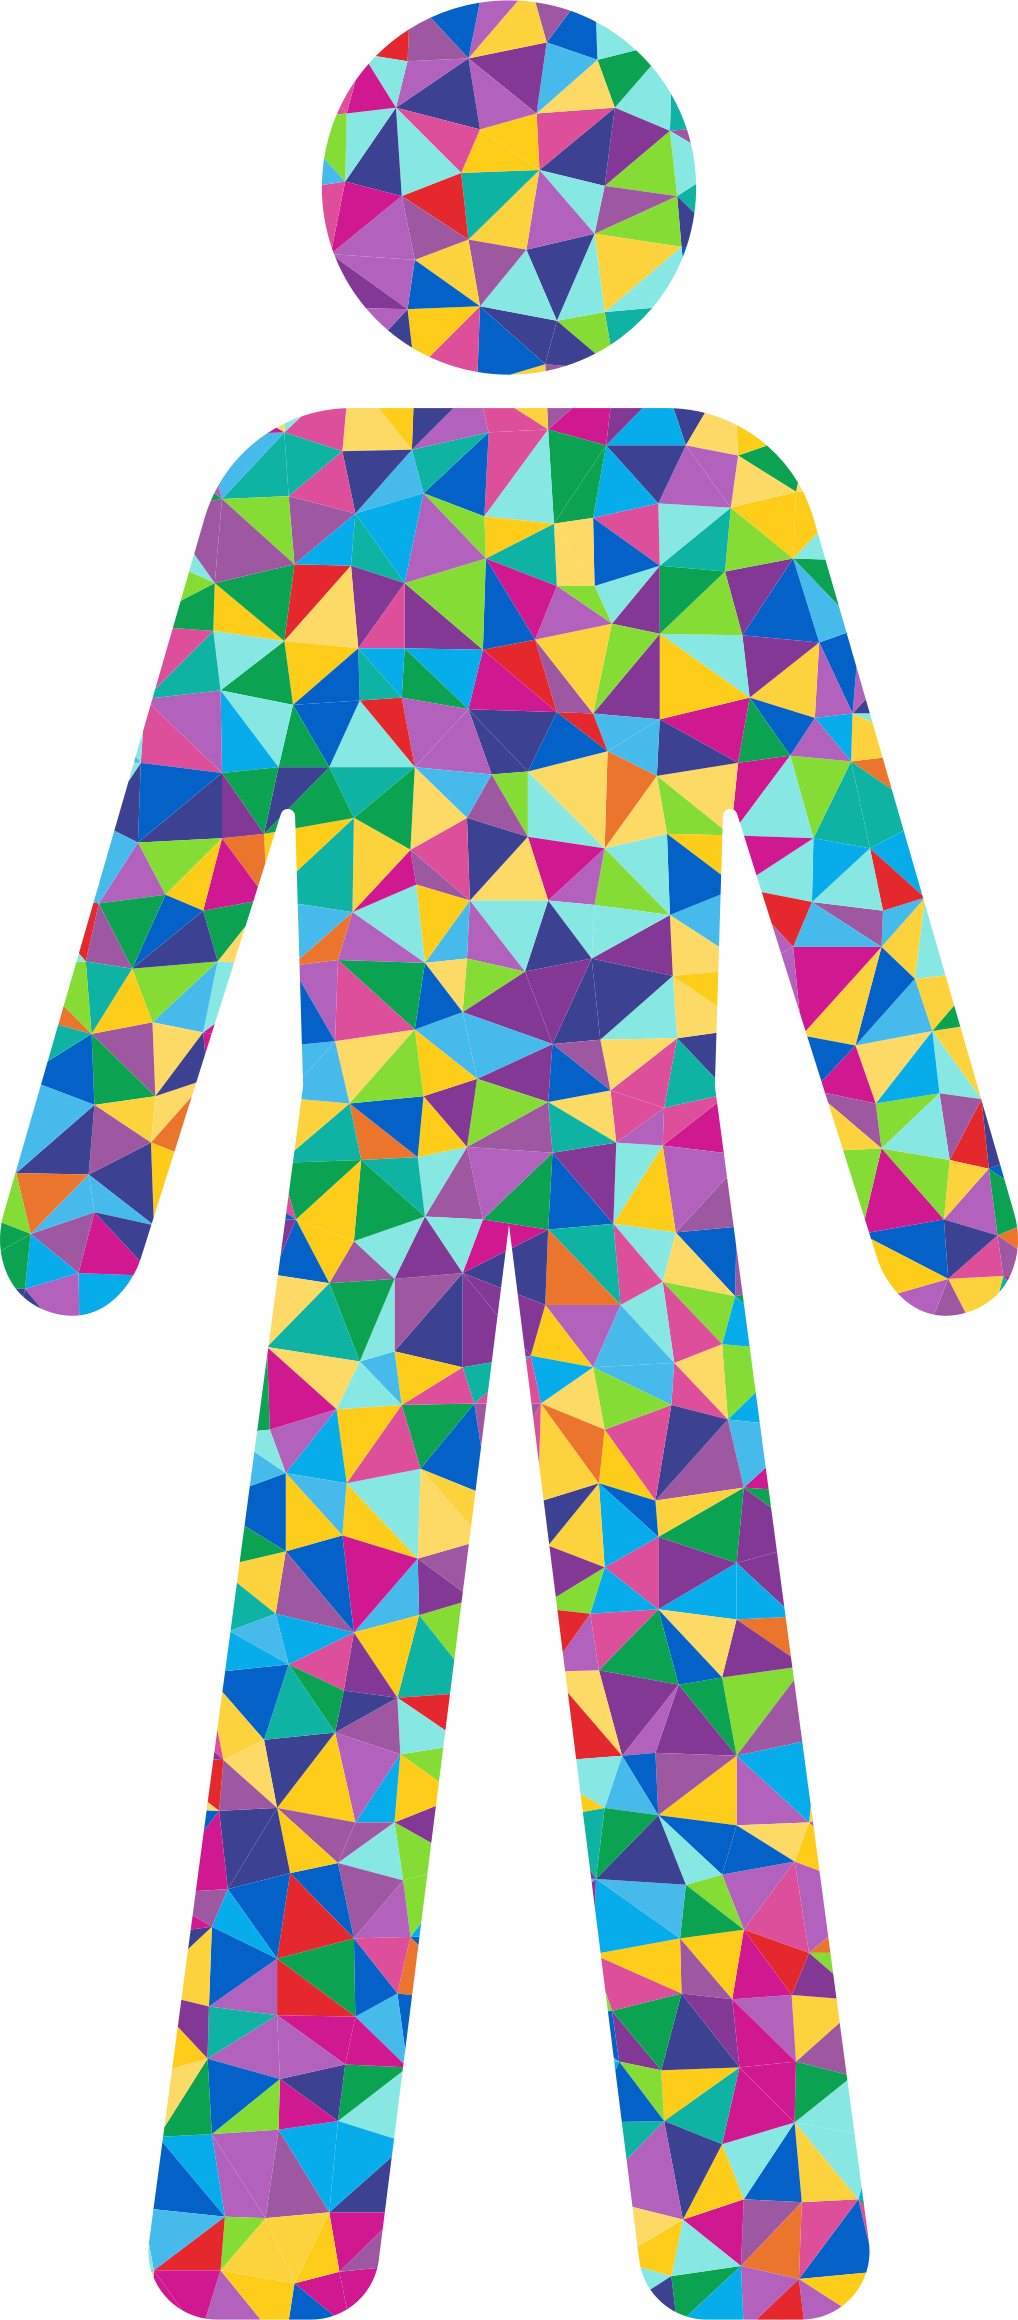 Prismatic Low Poly Male Symbol Silhouette by GDJ